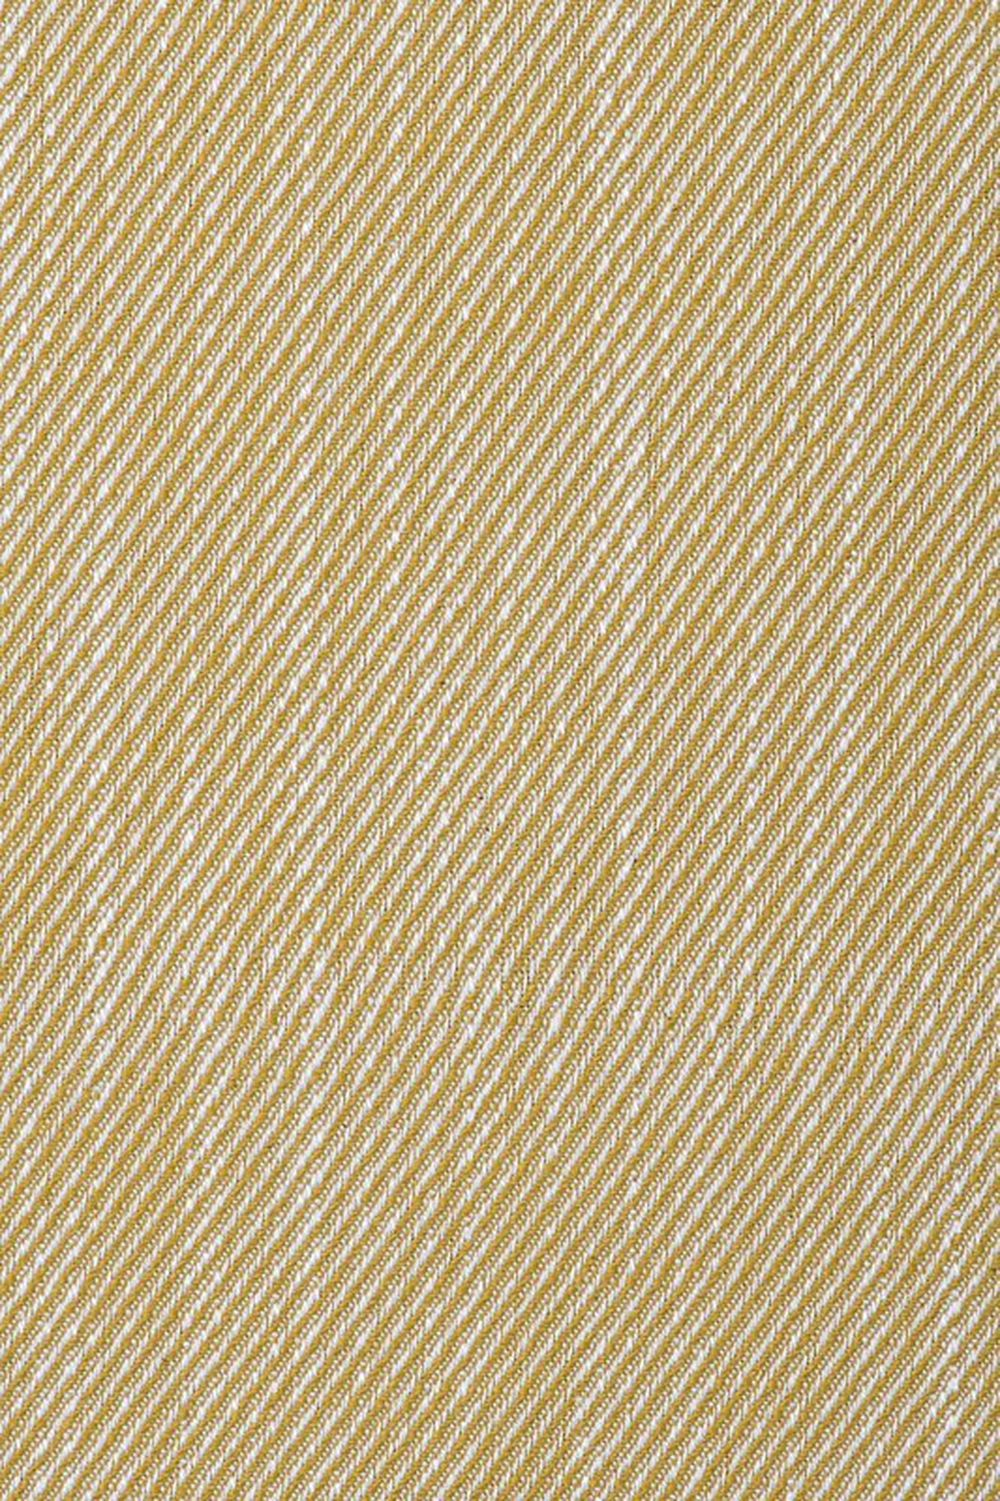 Photo of the fabric Twill Citrus swatch by Mokum. Use for Upholstery Heavy Duty, Accessory. Style of Plain, Texture